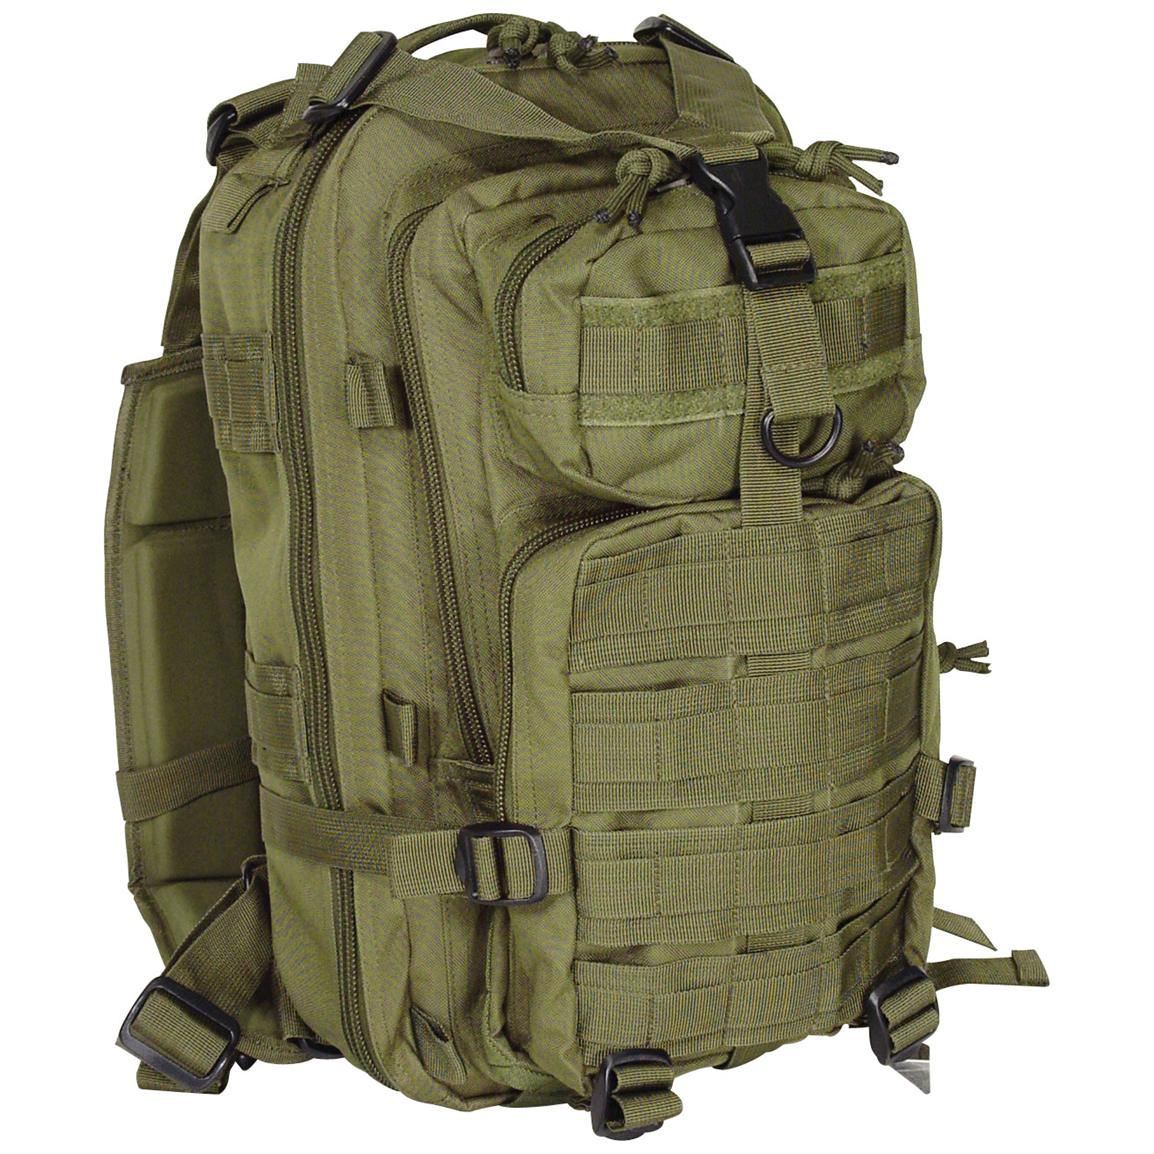 Level III Assault Pack